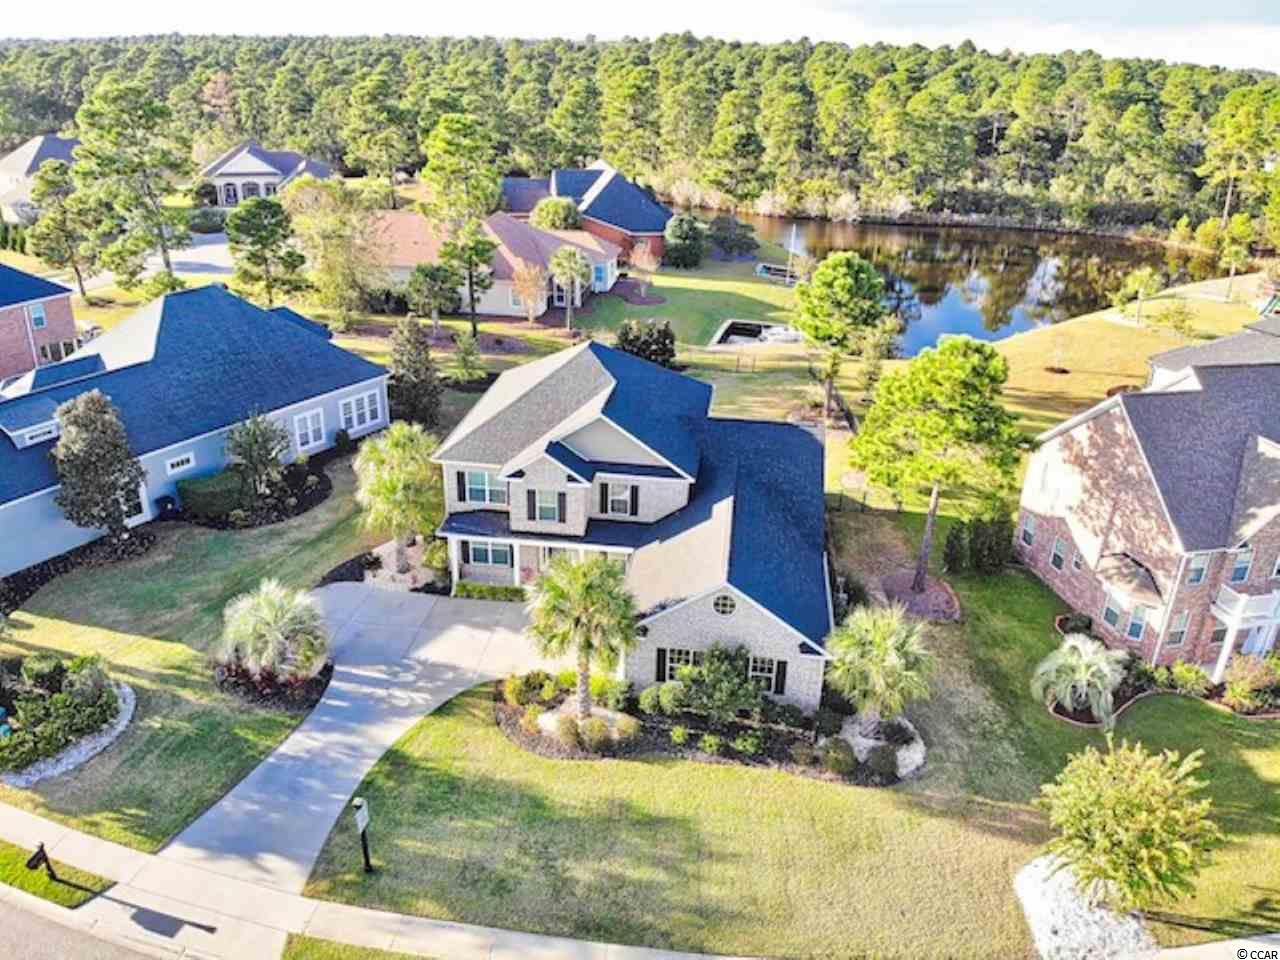 """Welcome home to this elegant, 5 bed 3 ½ bath, all brick home in the desirable Plantation Lakes community! The vast lot offers a 126' wide frontage and fully fenced back yard that backs up to water views. You will be thrilled with the modern coastal interior, tiled """"hard-wood"""" flooring throughout the first floor. Home has the option for a formal dining room or sitting area as well as a den/office area separated by French doors, giving you plenty of versatility with these rooms. The spacious first-floor master bedroom has a double tray ceiling with ceiling fan, walk-in closets and an en-suite bath with a large garden tub, double sinks, and a walk-in shower. Upstairs gives you a generous loft connecting 4 large bedrooms and 2 full baths. Enjoy the lovely South Carolina weather relaxing on the oversized screened-in privacy porch. This home is landscaped beautifully with tech-controlled irrigation and security systems- many more upgrades. Plantation Lakes residents enjoy the community pool, tennis courts, a clubhouse and a convenient dock for lake travelers. The location is just minutes from all the dining, entertainment and shopping that the Grand Strand has to offer!"""